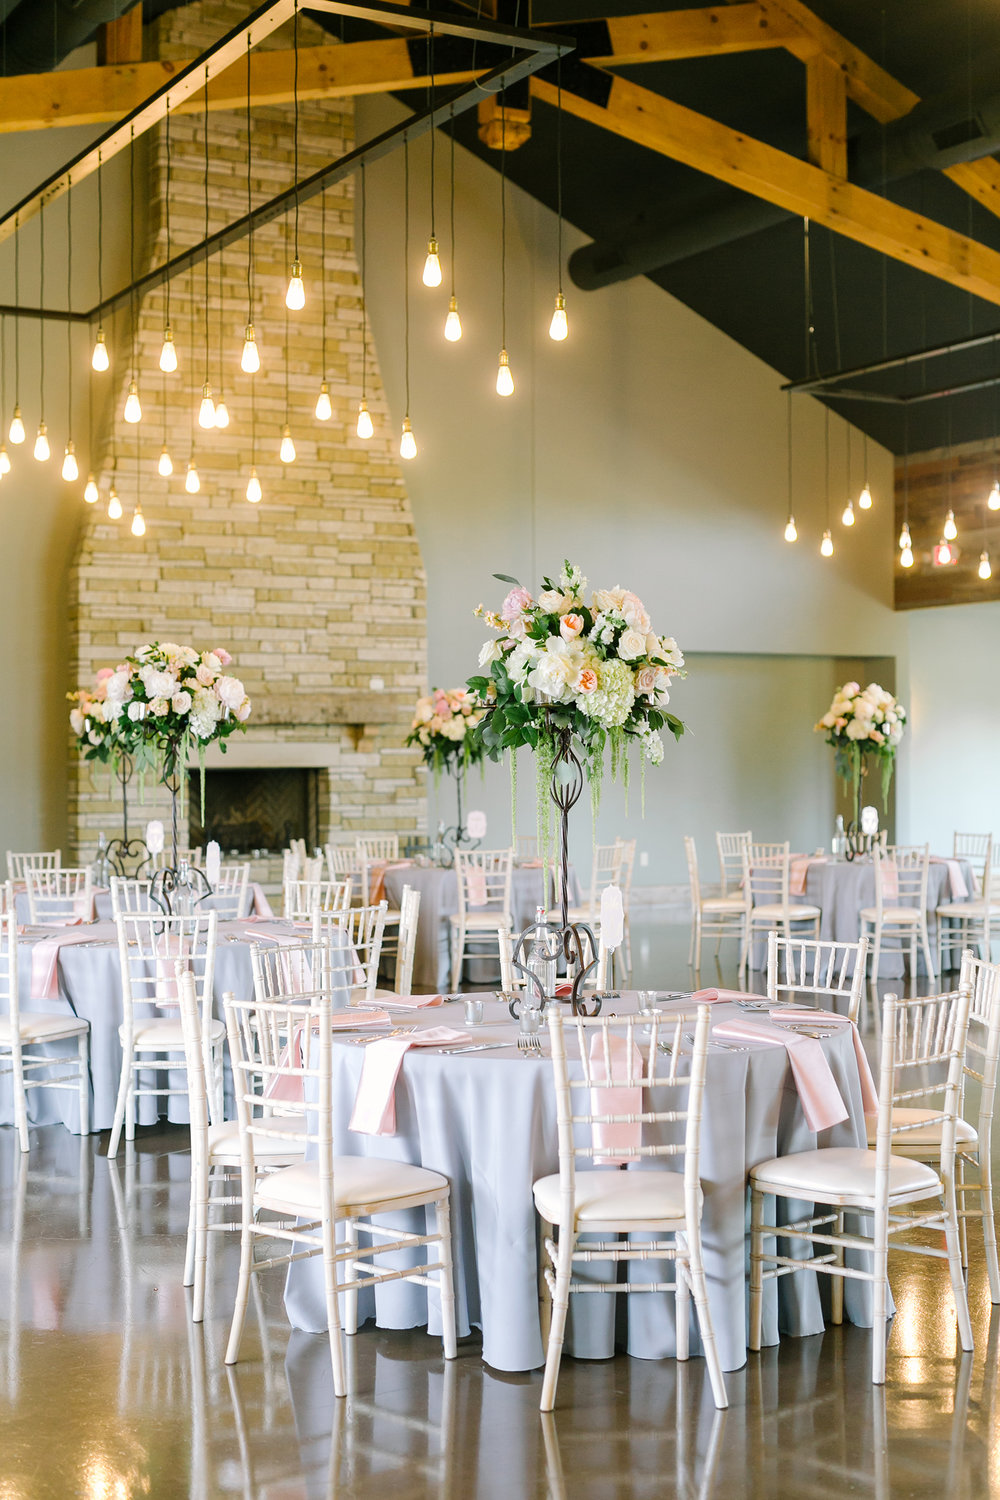 Austin_Wedding_Photographer_Kimberly_Brooke_Photographic_015.jpg